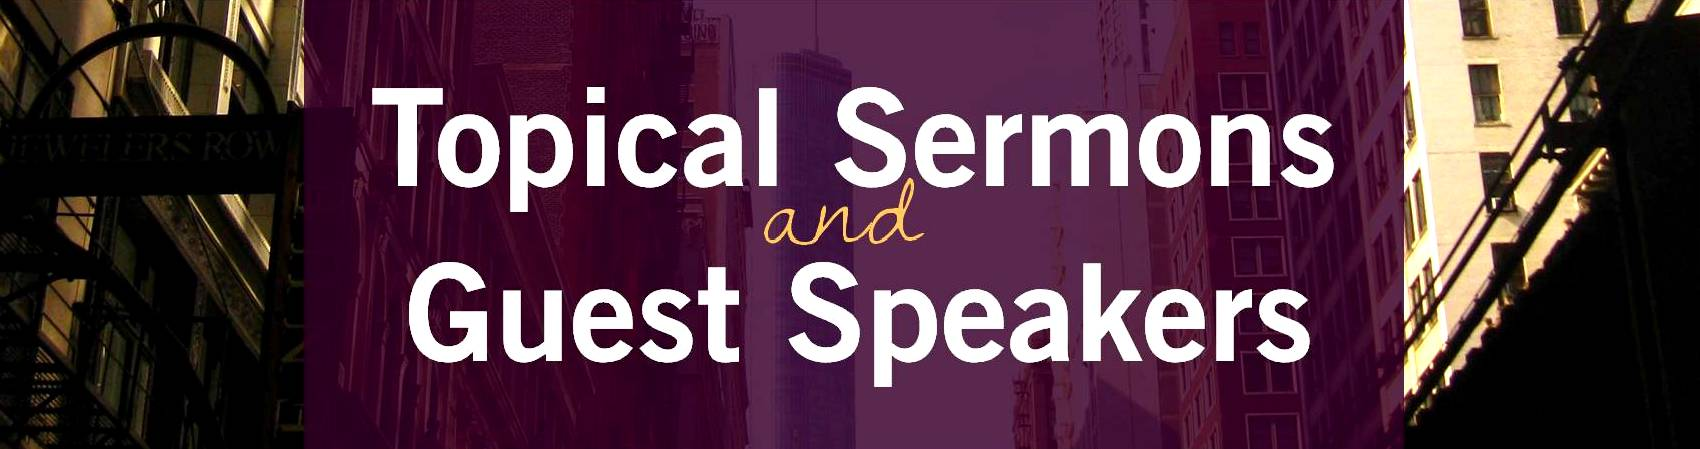 topical sermons and guest speakers header.jpg